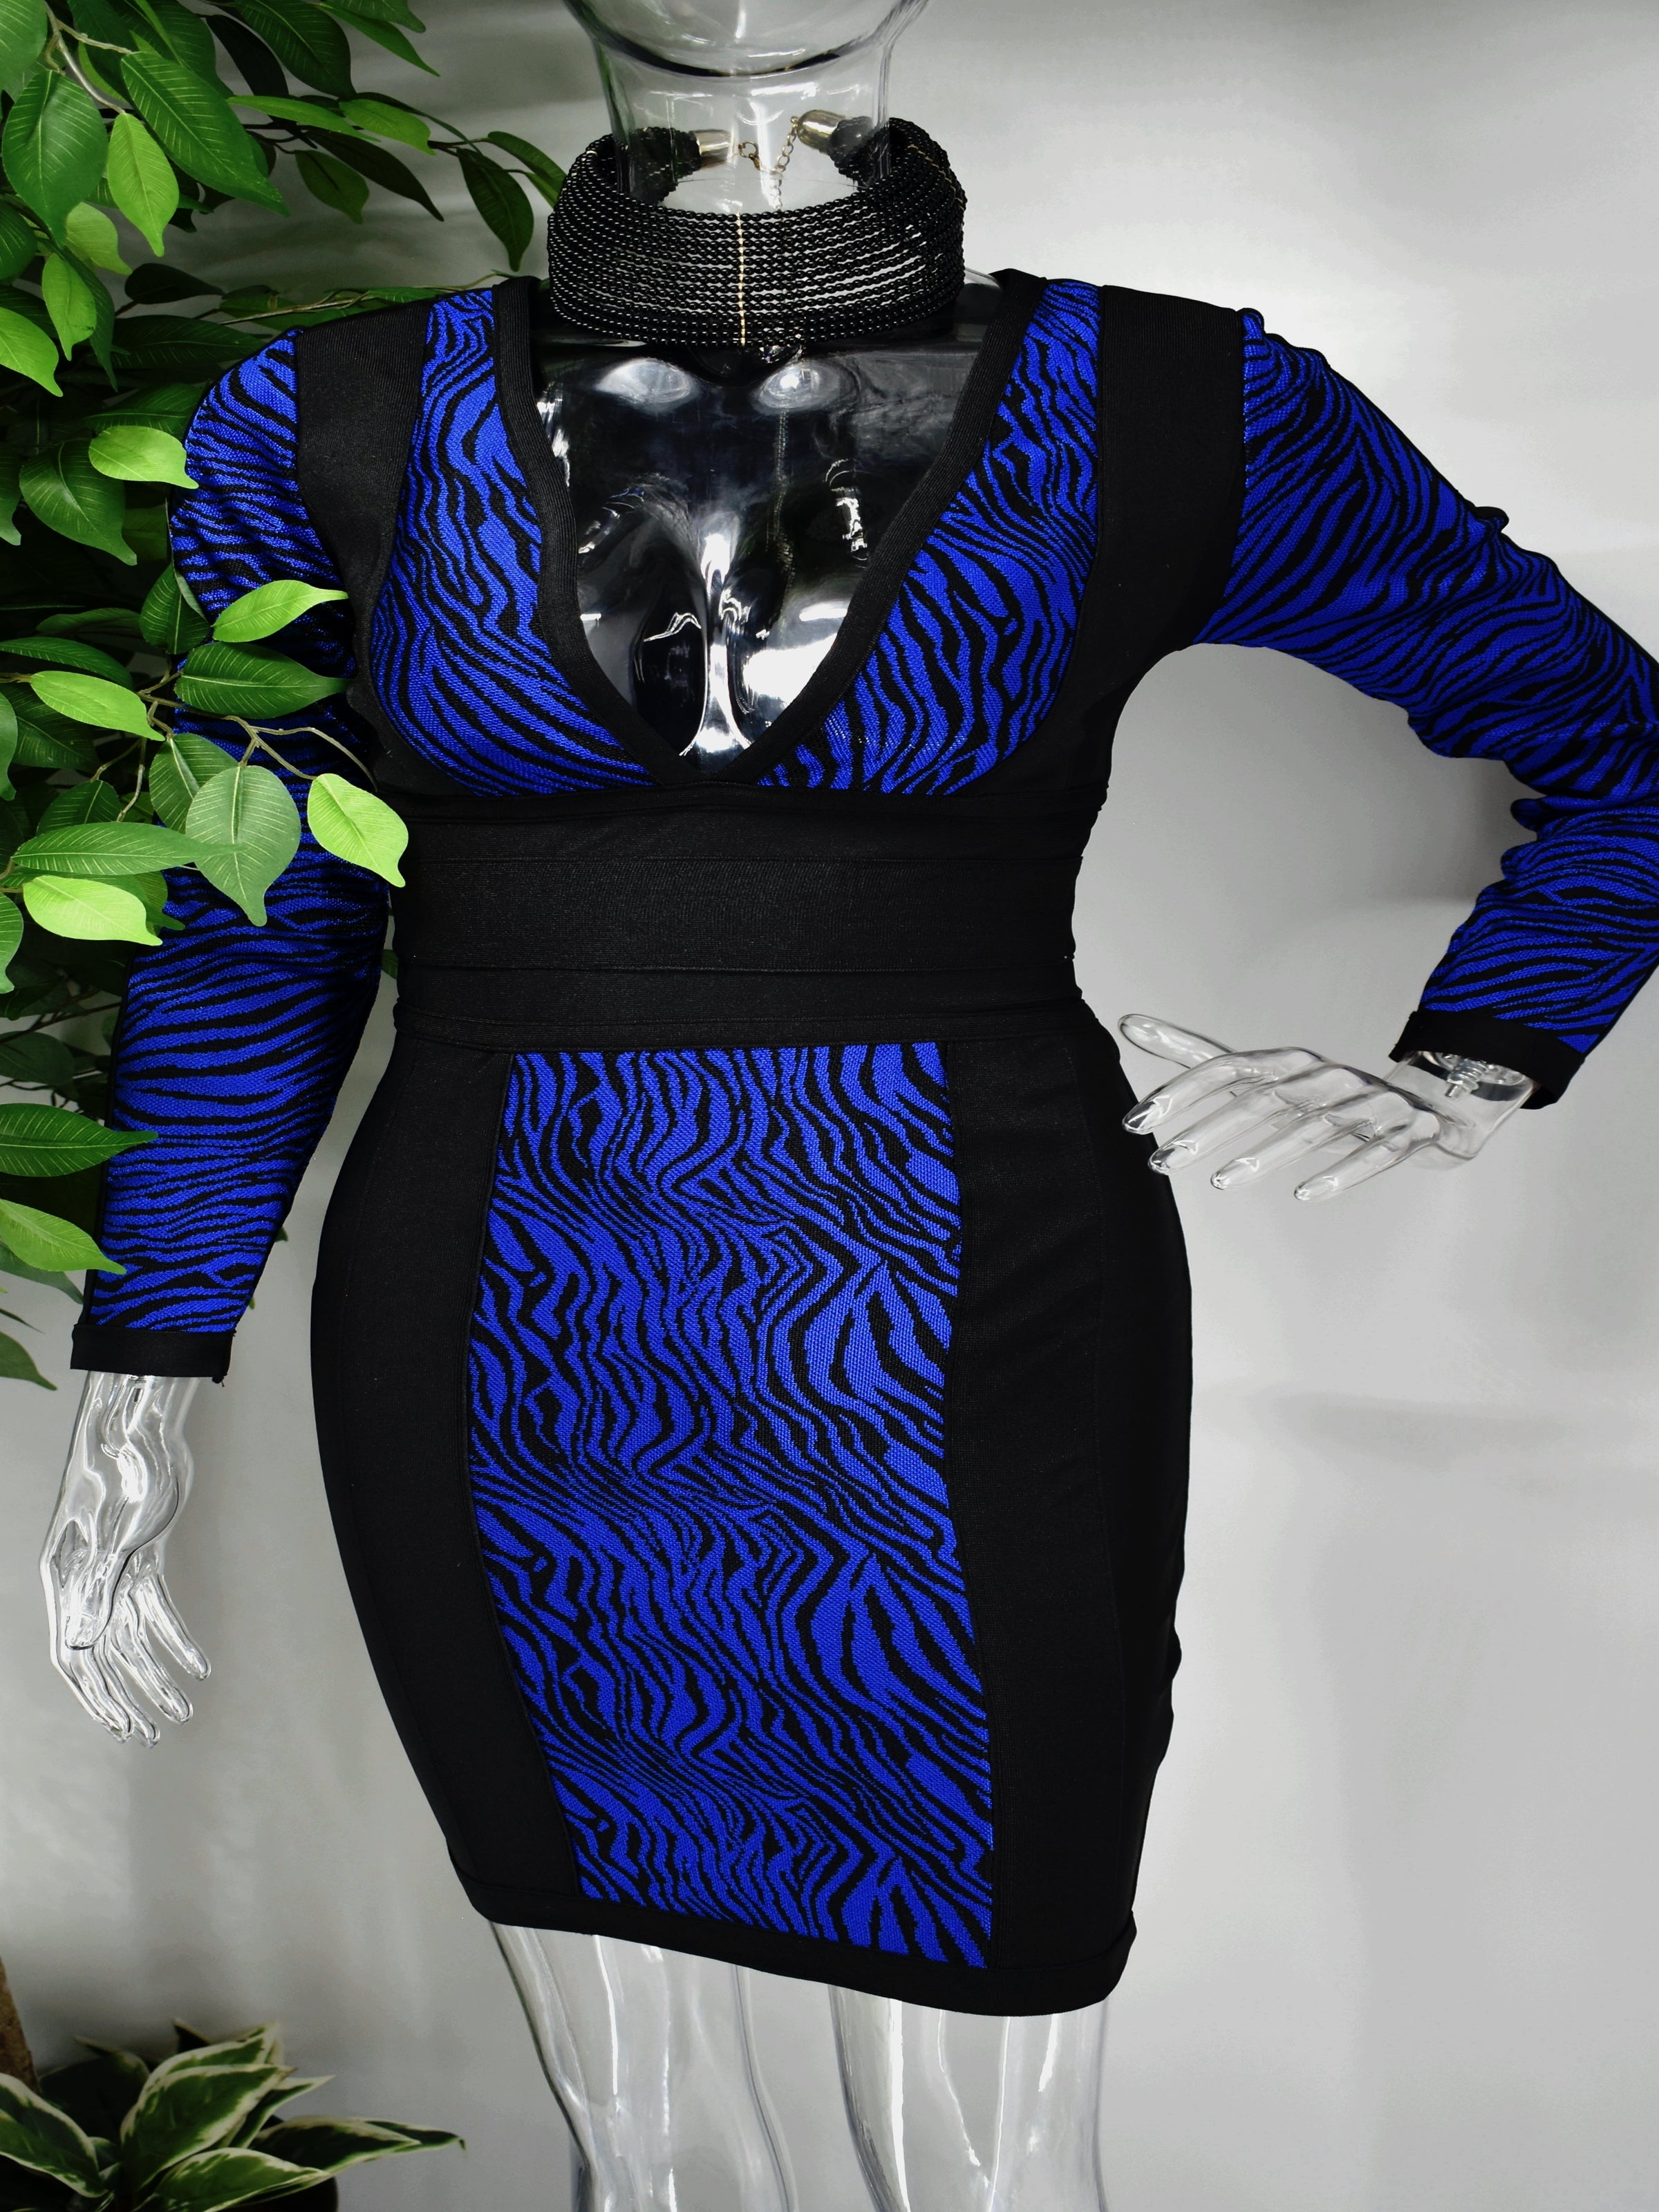 Our Bridgette Bandage dress brings that exotic vibe and is perfect for a night out. The bold blue and black tiger print centers this beauty which has a fitted bodice, long sleeves, and a plunging v-neck line. It is supported by a cinched waist and a fitted skirt which lands above the knee.